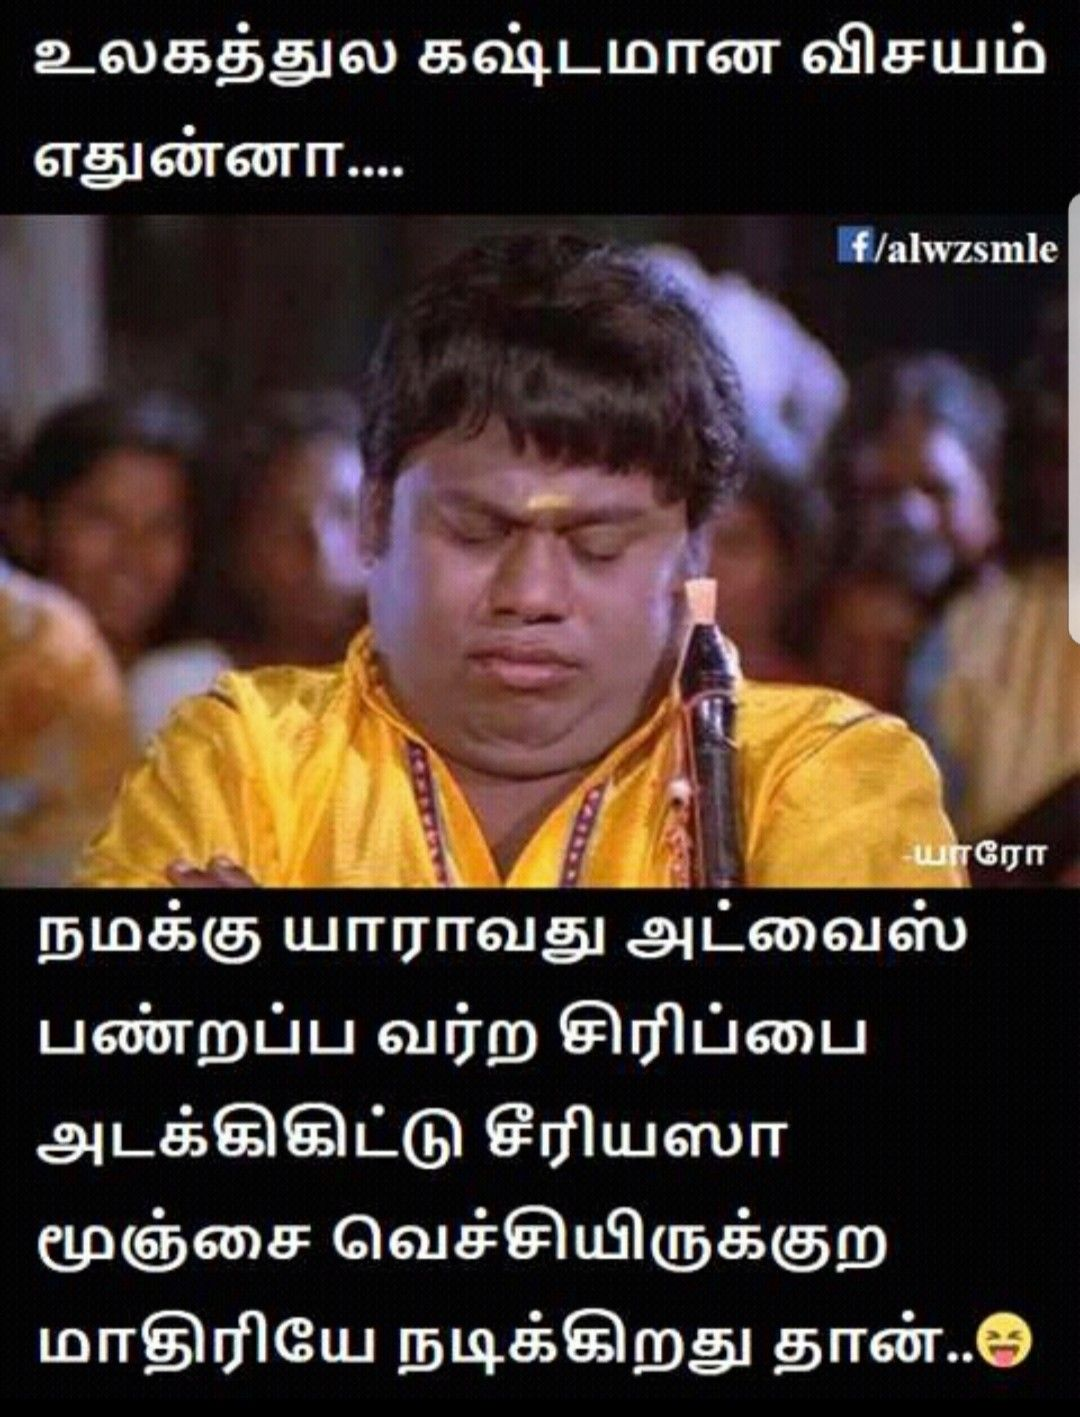 Pin By Siva Subramaniam On Tamil Comedy Comedy Quotes Comedy Memes Funny Memes Images